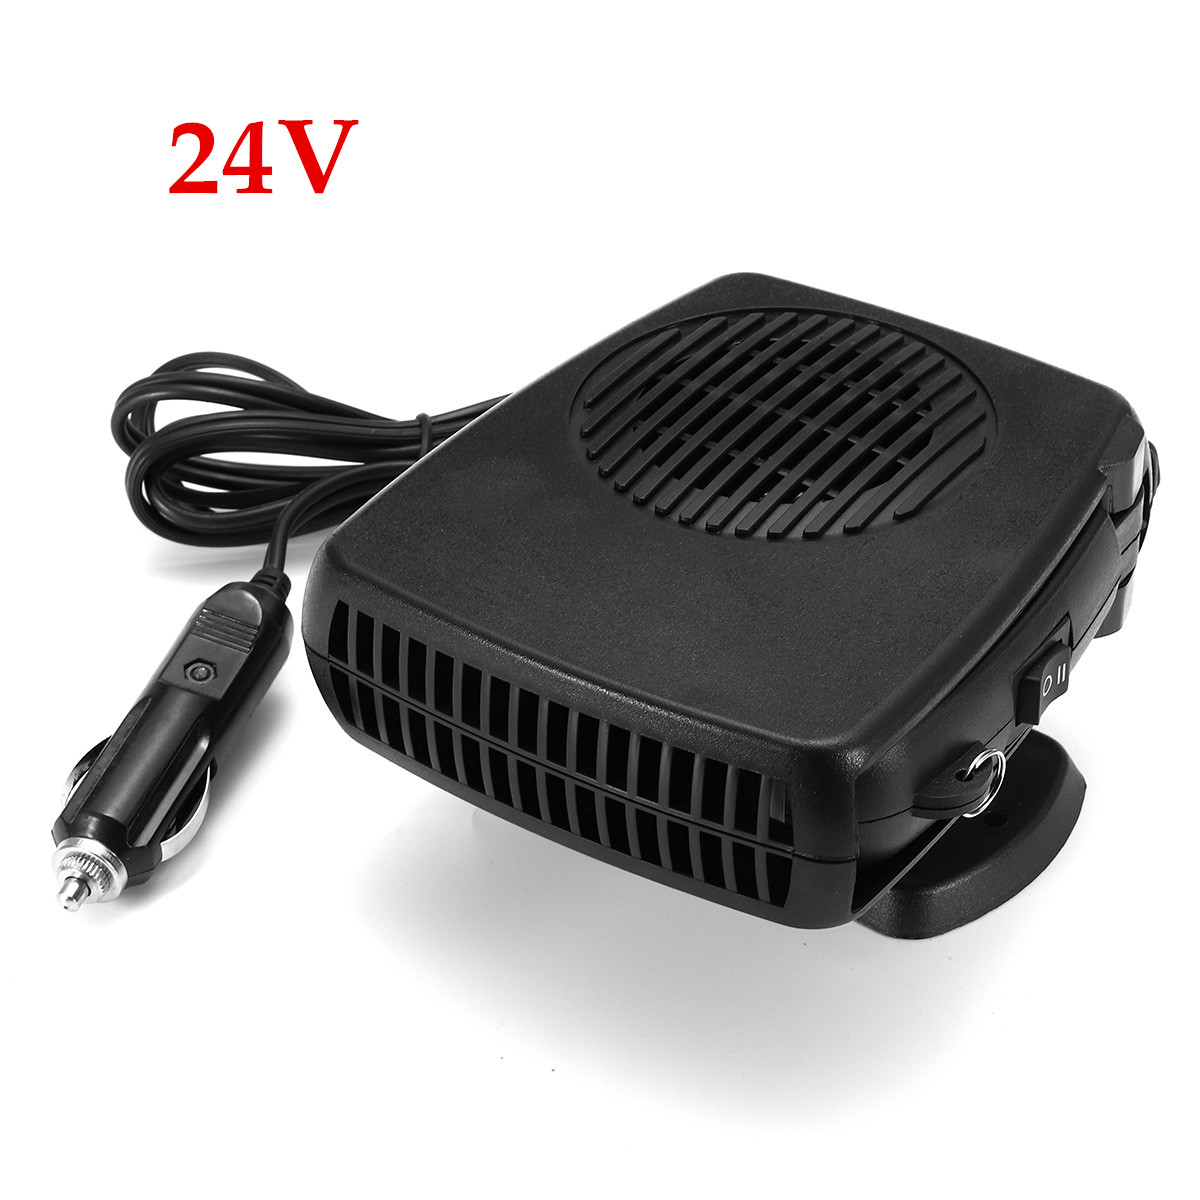 5KW//8KW Diesel Air Heater with Remote Control and LCD Display 12//24 V,Parking Fuel Air Heater Car Truck Fuel Heater for Various Diesel Mechanical Vehicles,Motorhome Trailer Trucks Boats